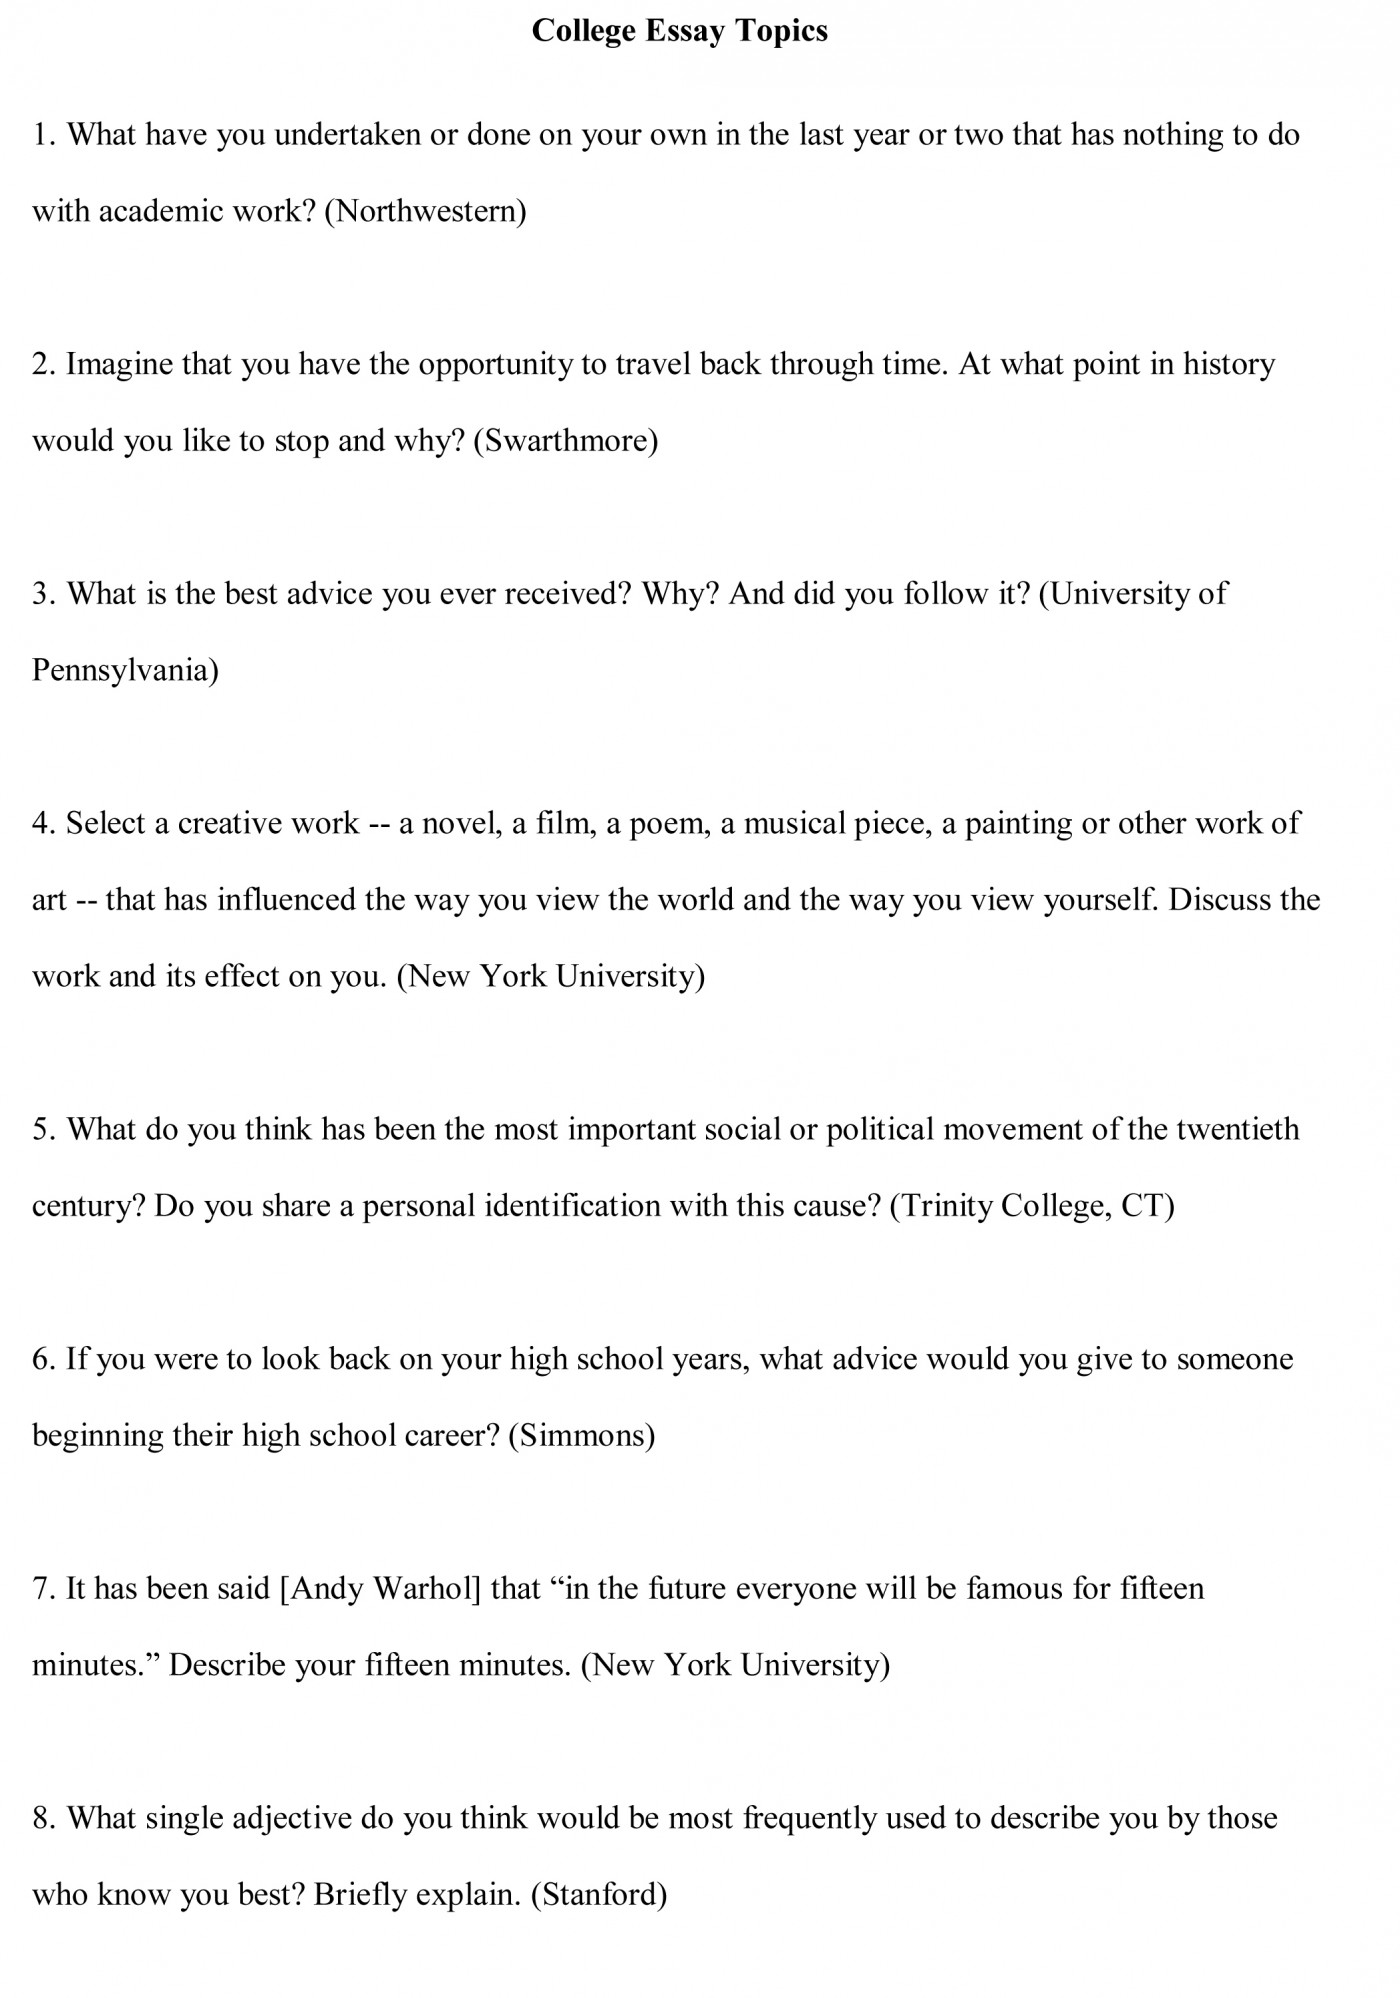 014 Essay Topics College Free Sample1 Archaicawful For 8th Grade List Class 10 Questions Macbeth Act 2 1400